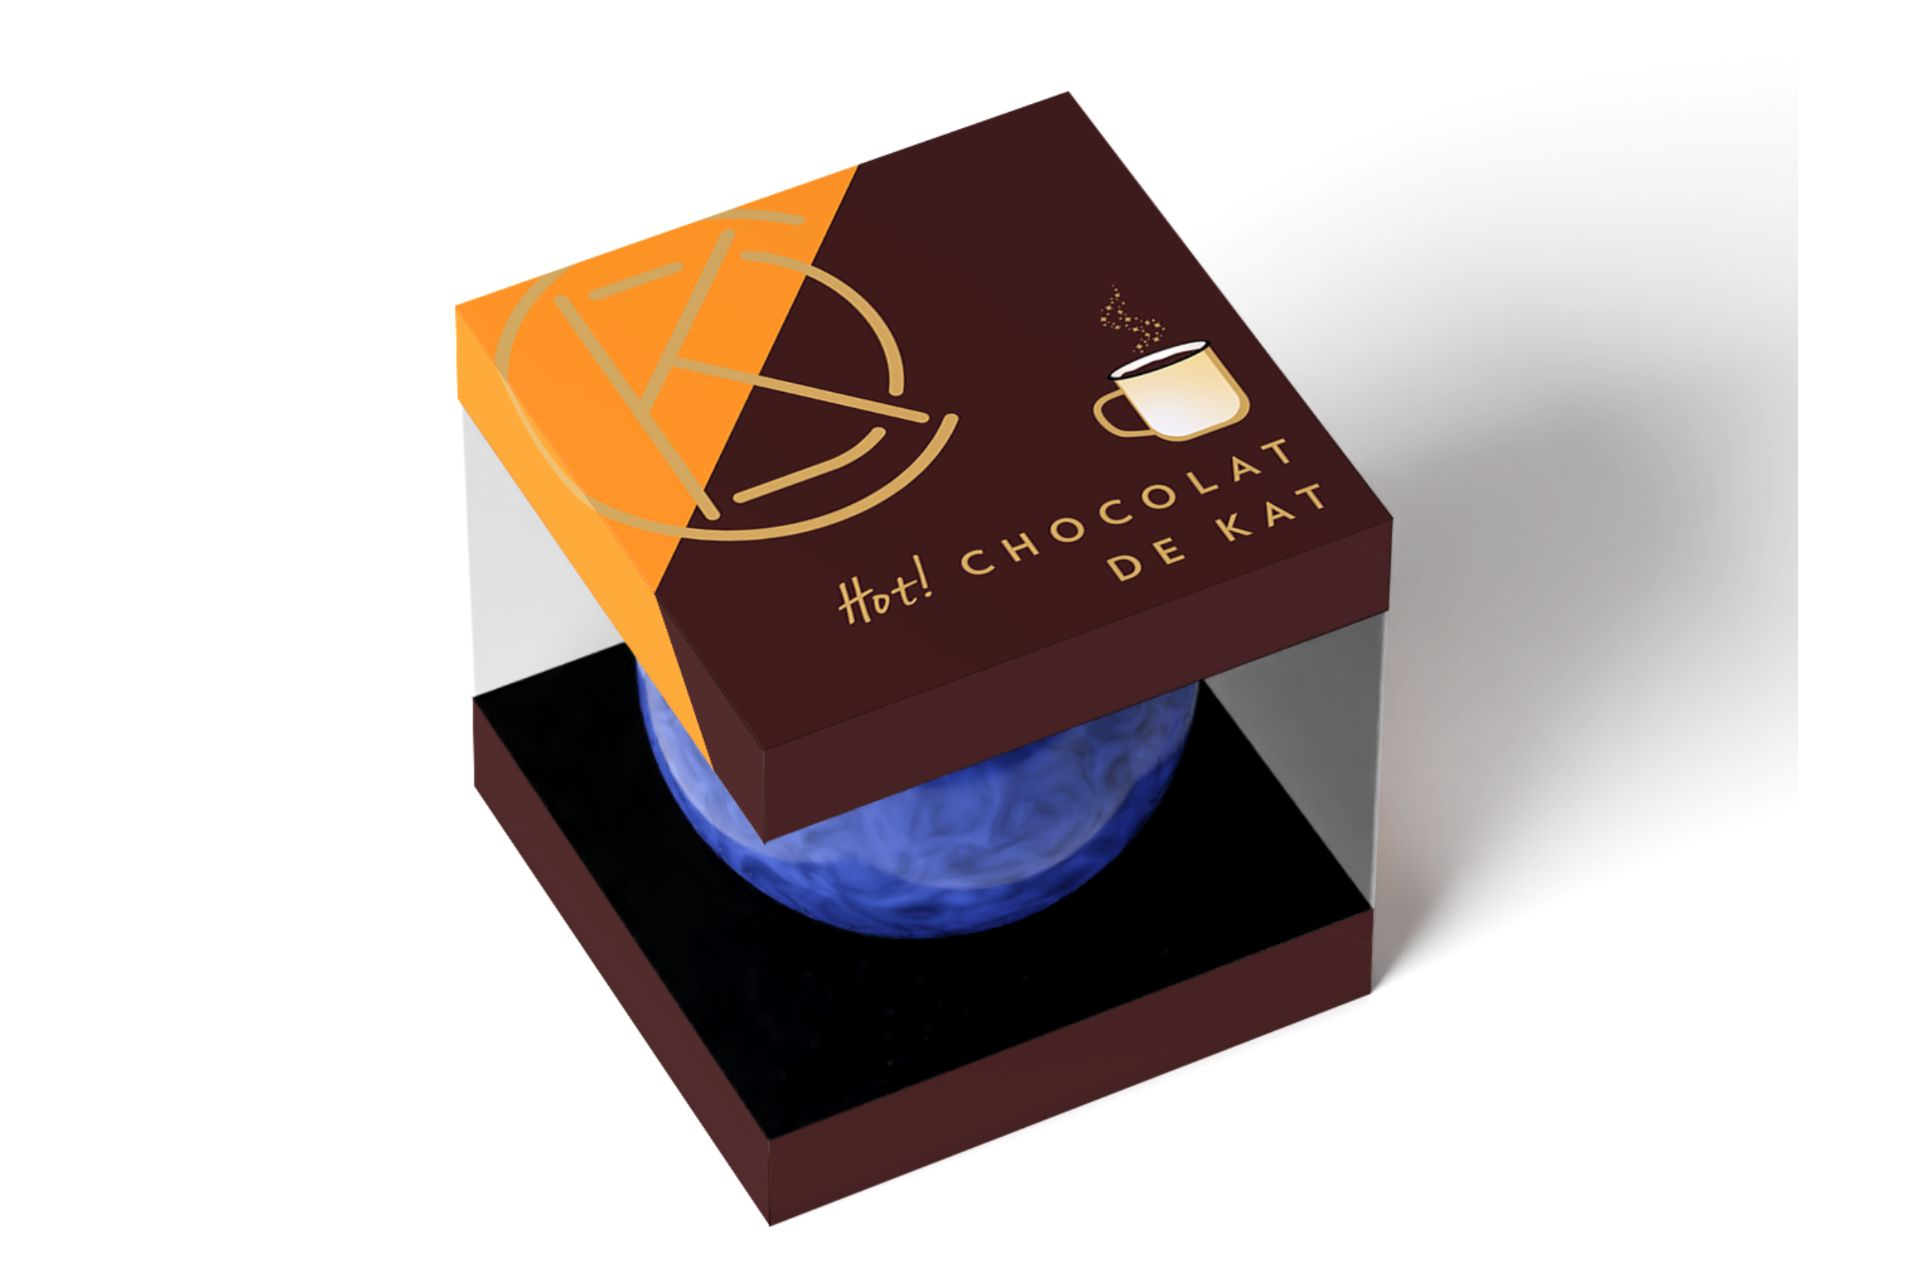 blue hot chocolate bomb in brown and orange packaging